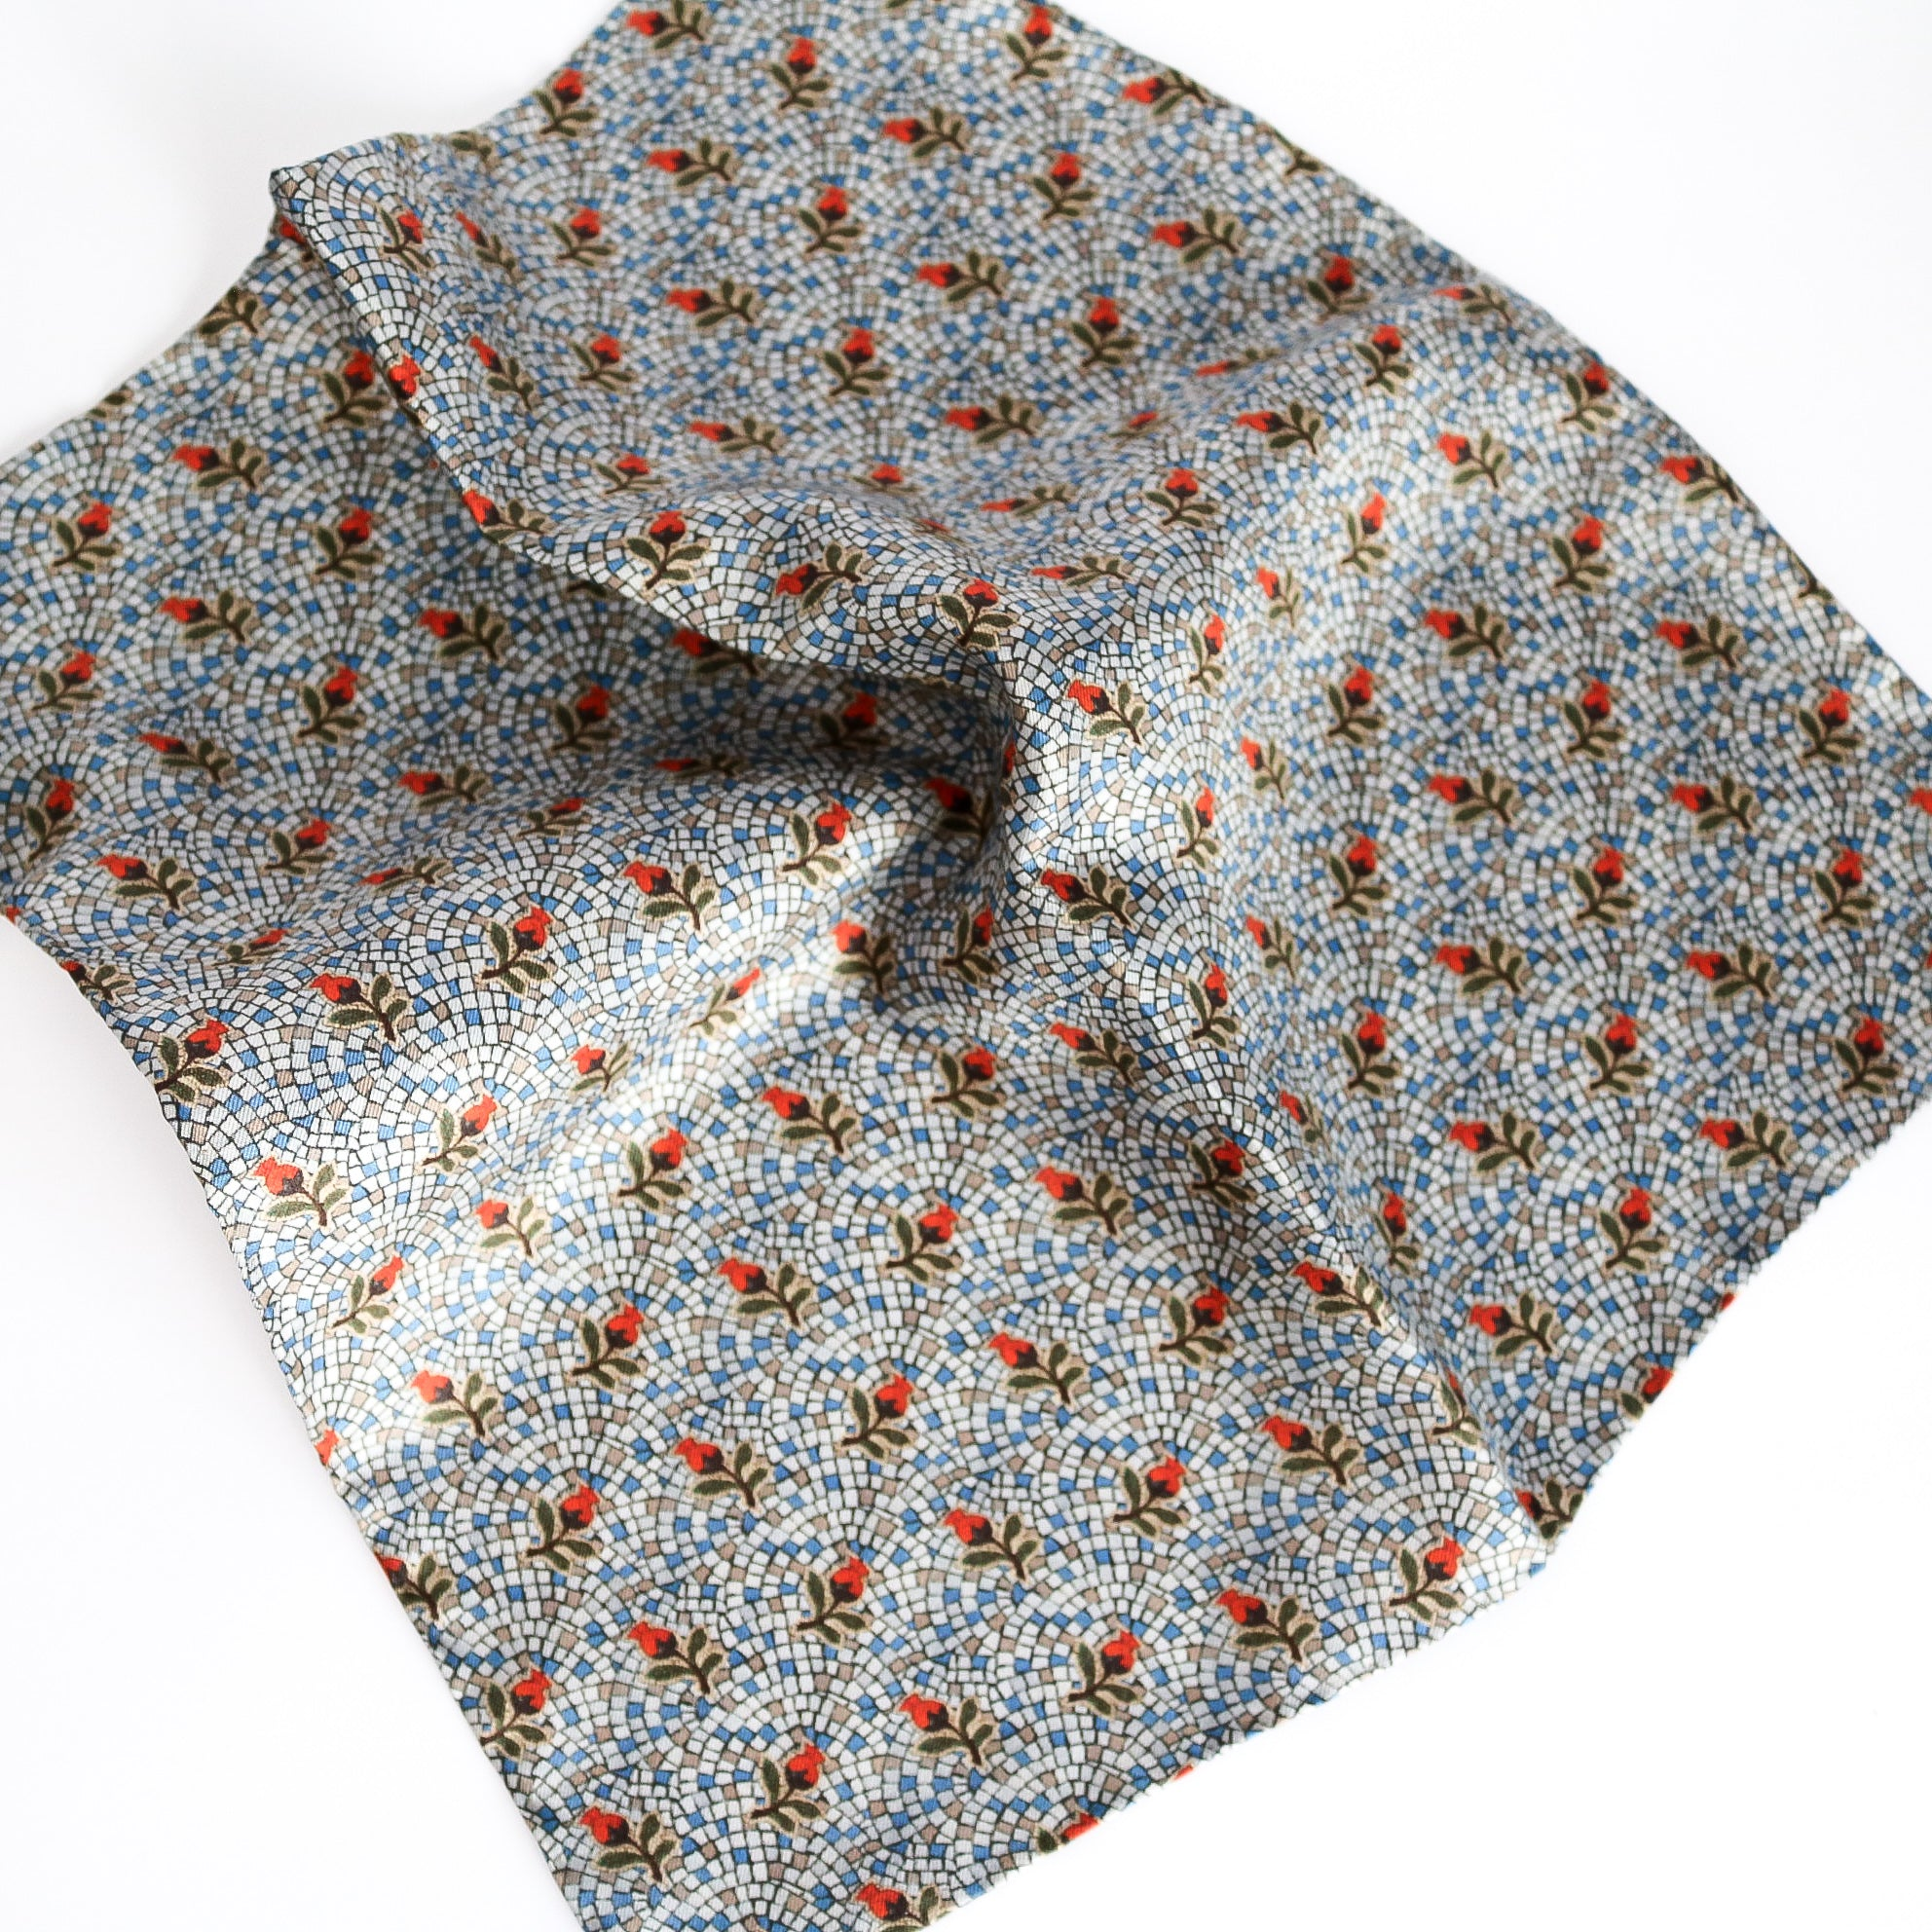 'Gumnut Blossom Mosaic' 100% silk MENS pocket square 32cm - The Block Collection